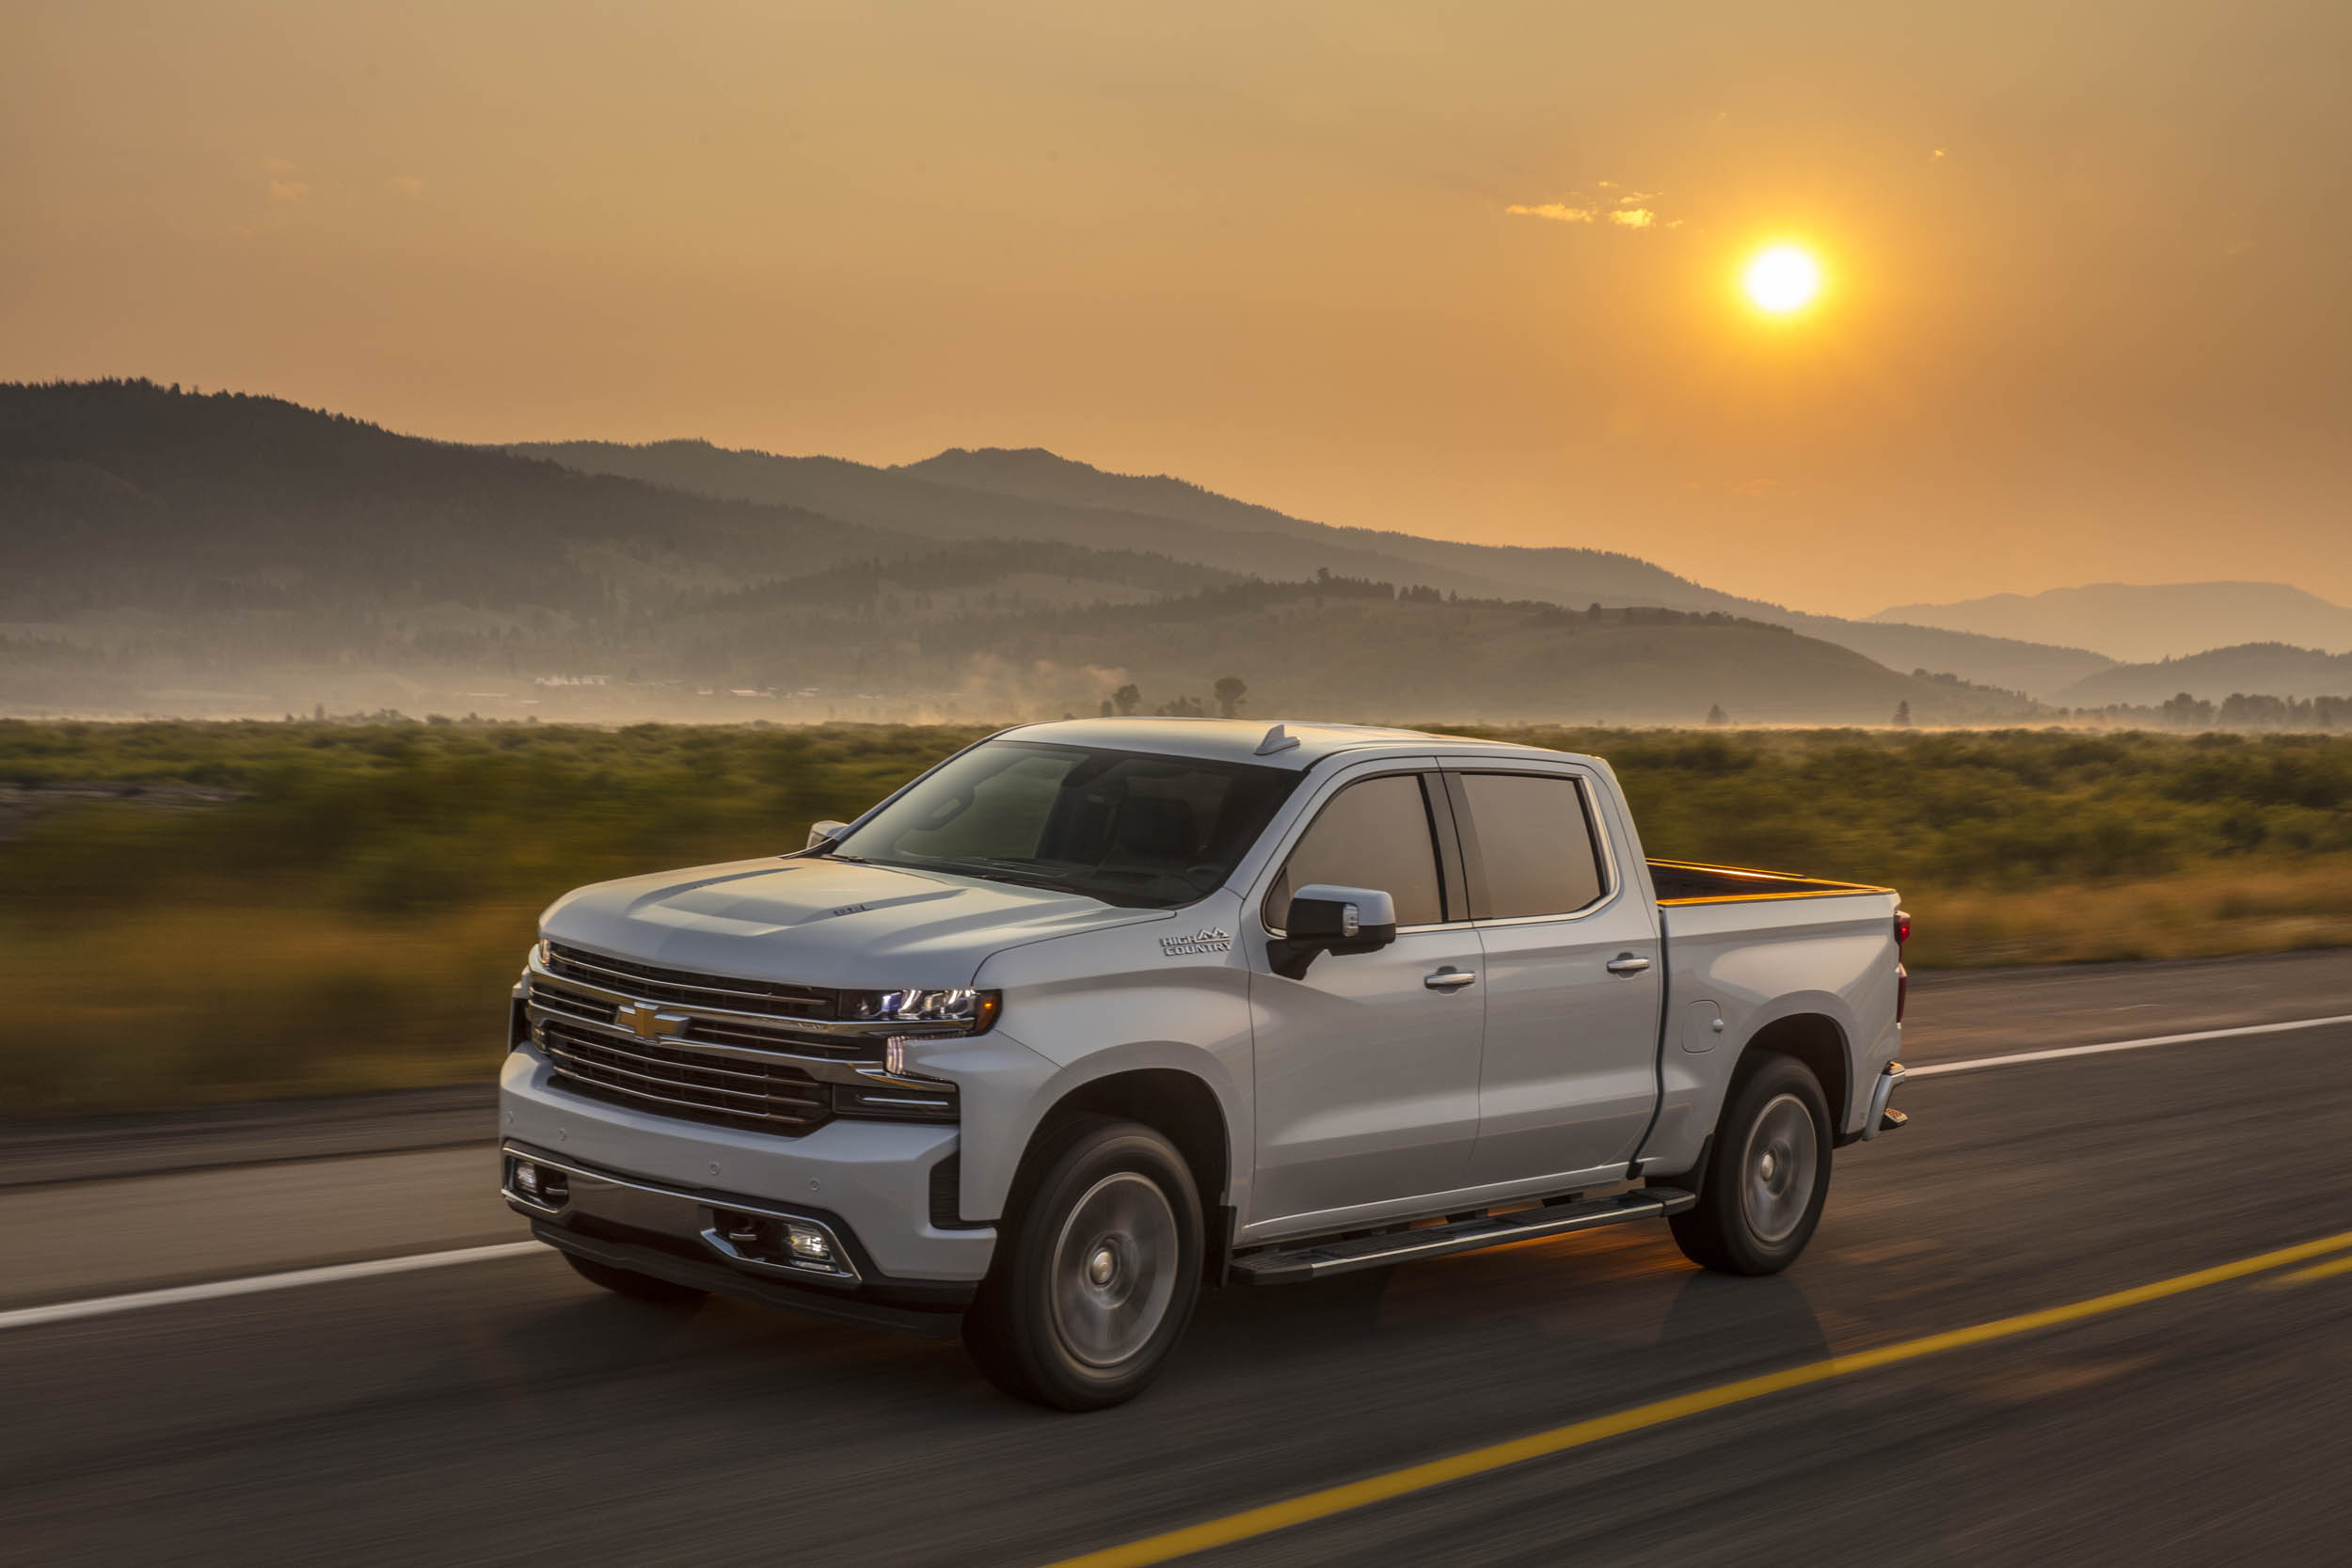 2019 chevrolet silverado high country on road at sunset